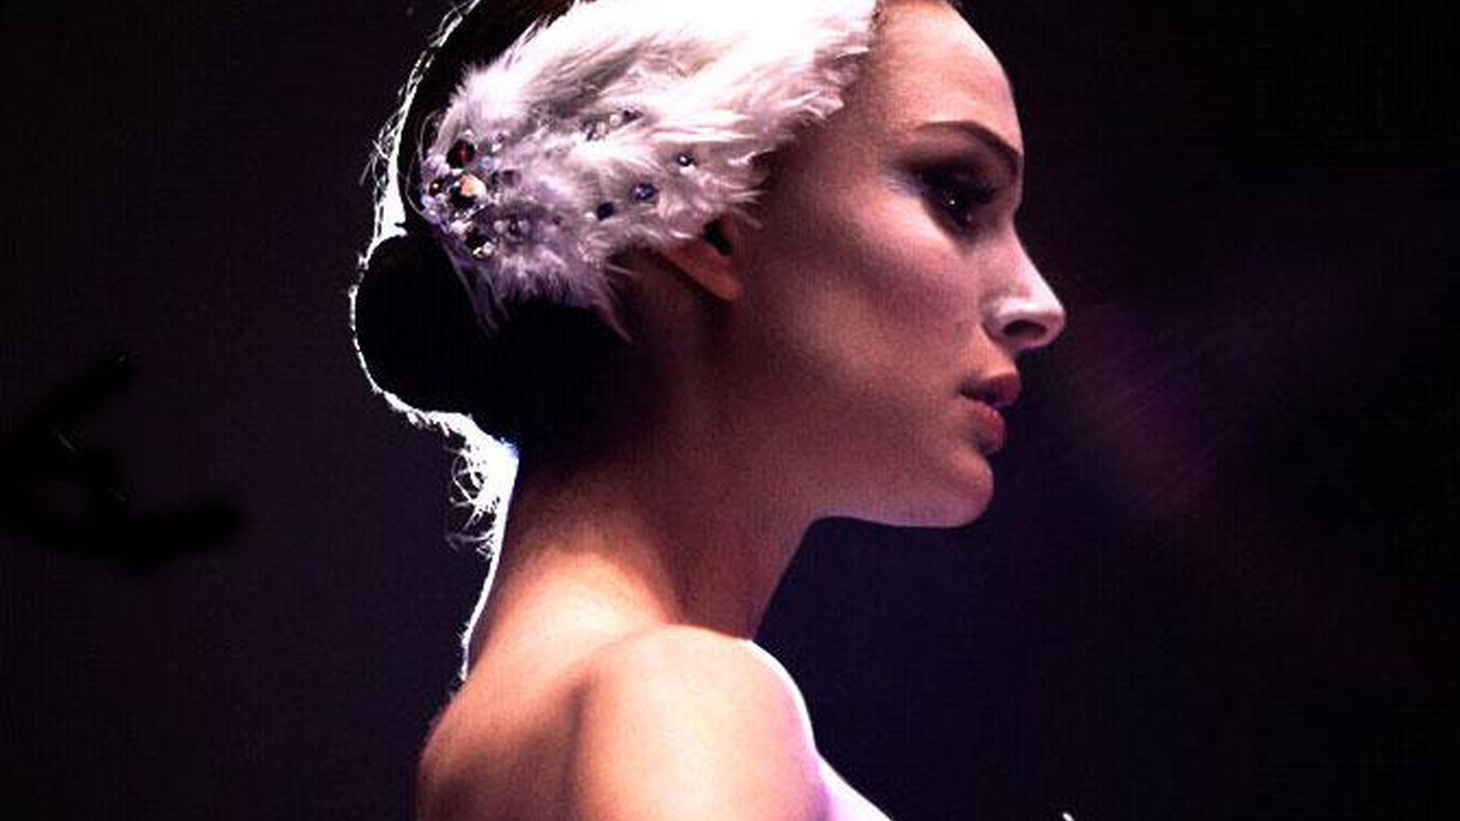 Fine actors can reveal complex feelings in a flash, and one of those flashes comes early in Black Swan.